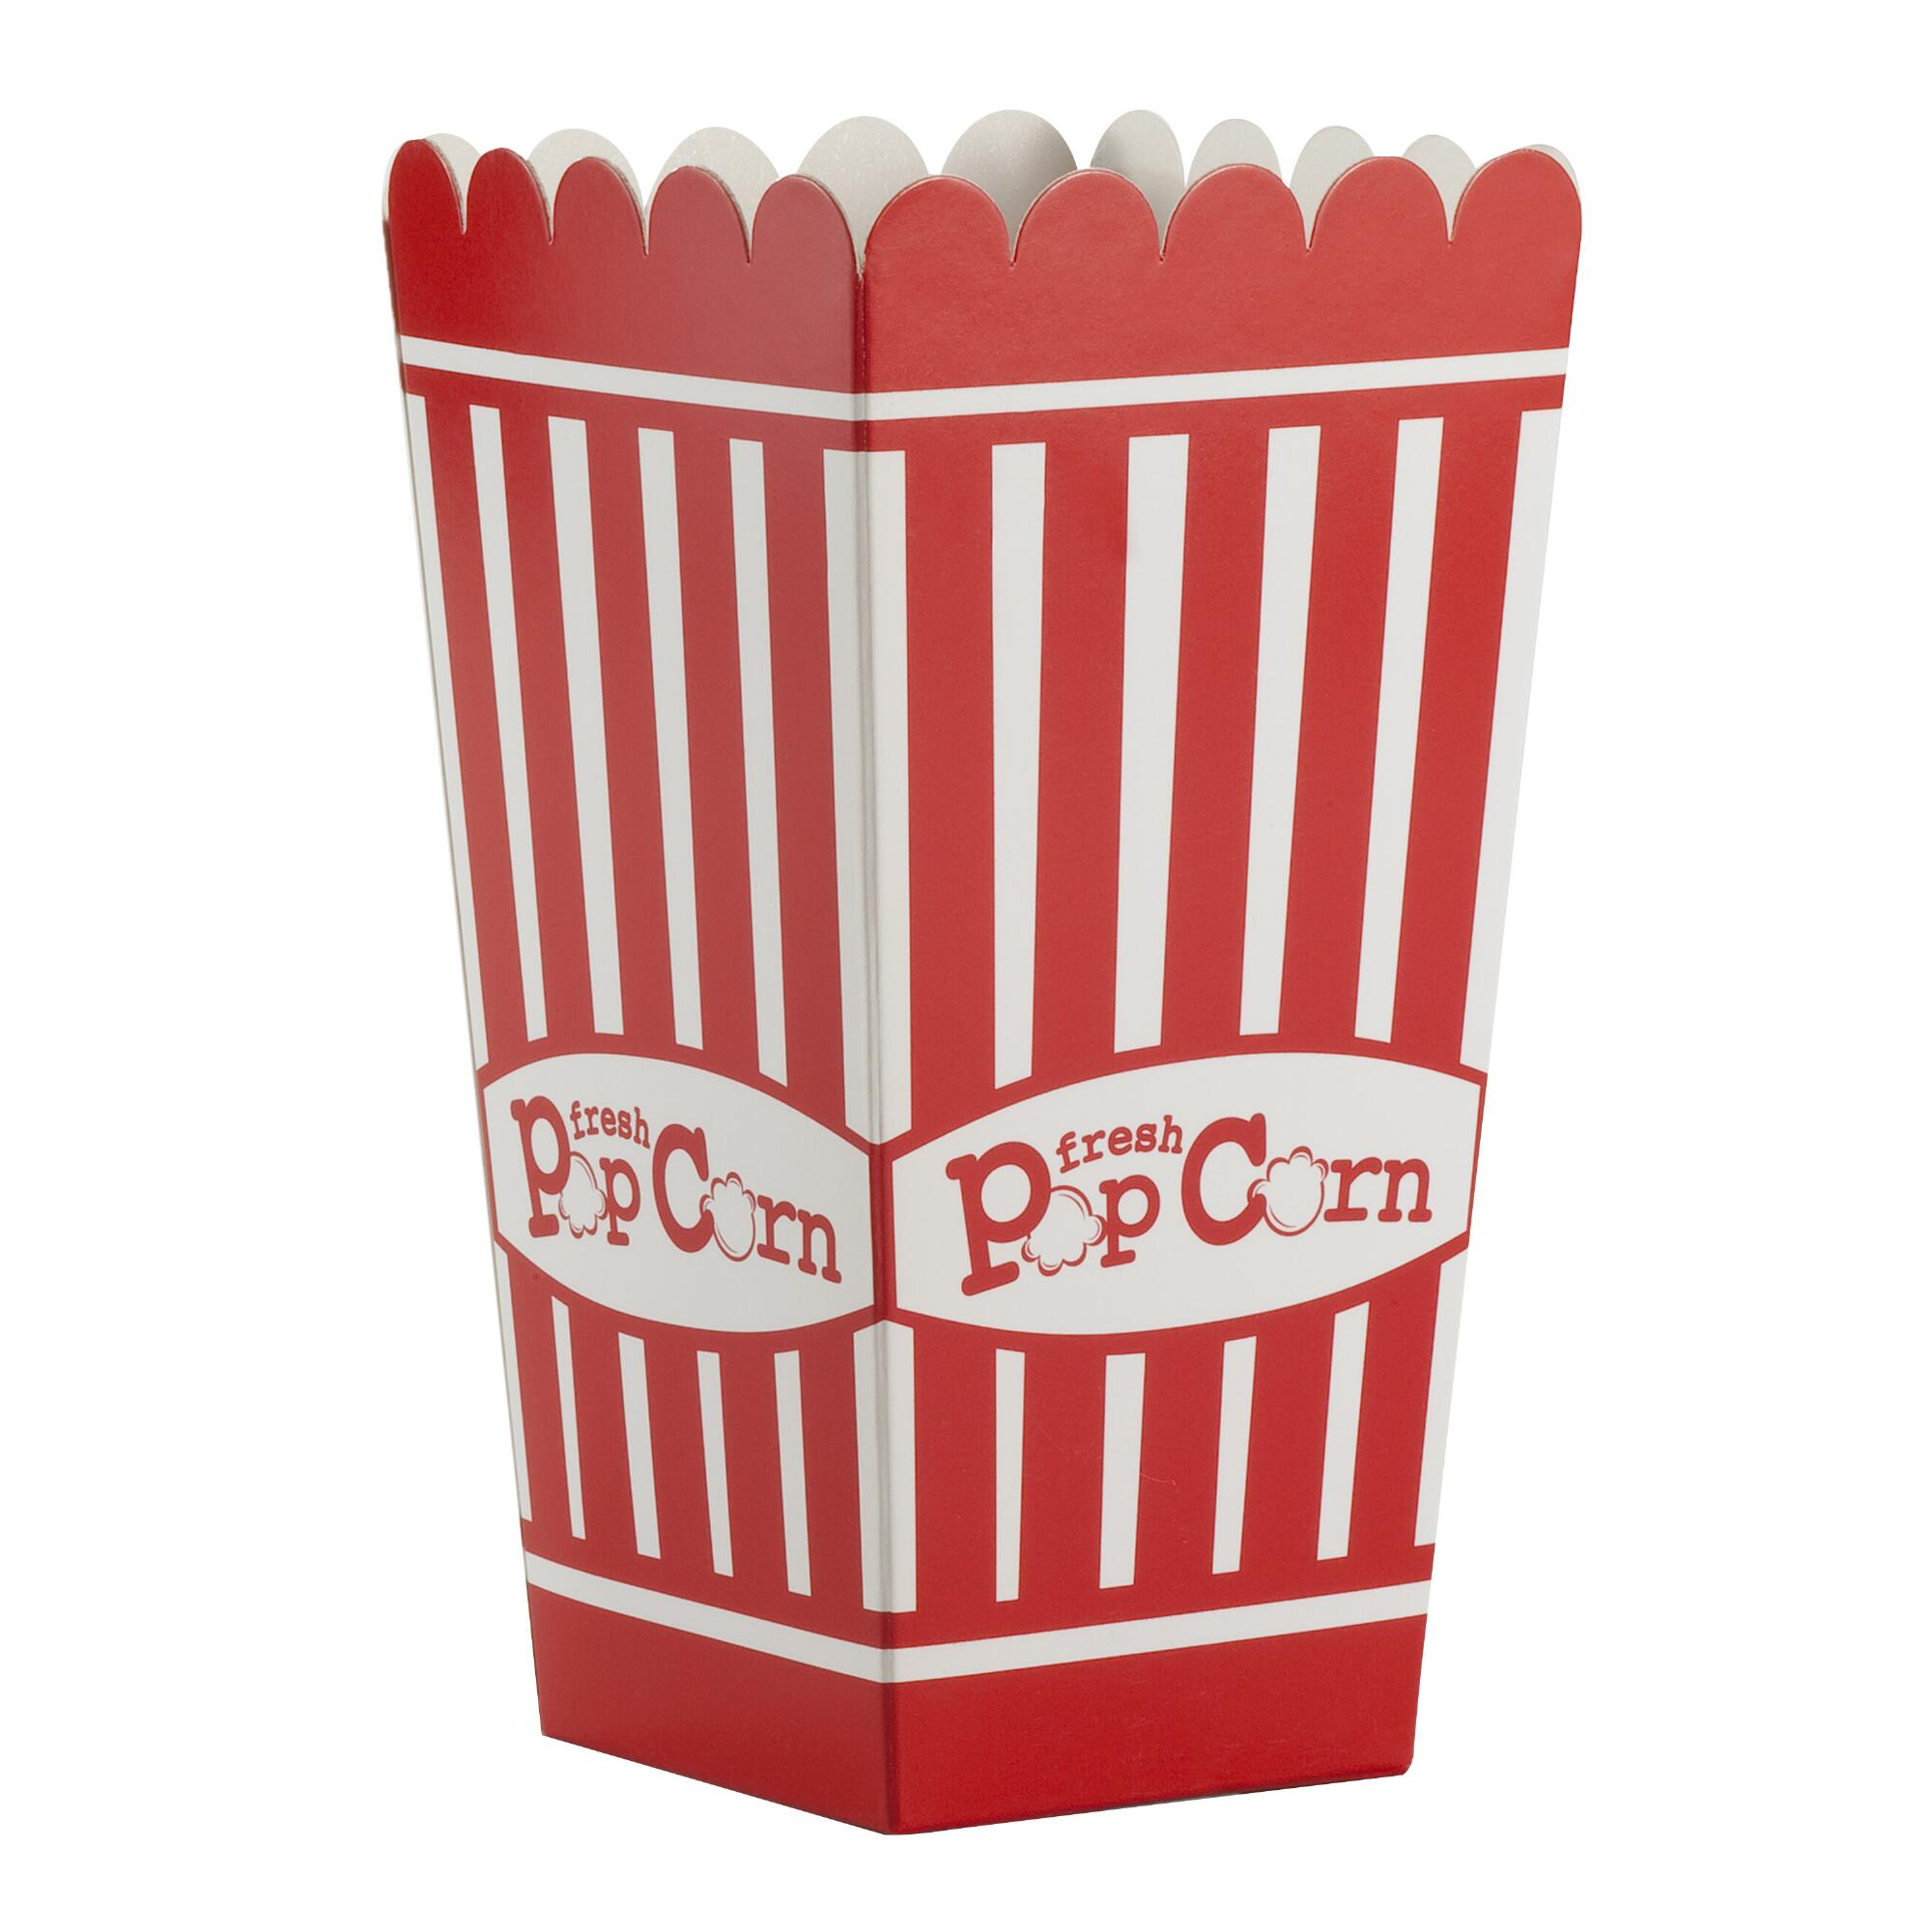 Small Popcorn Boxes, 12-Count | World Market